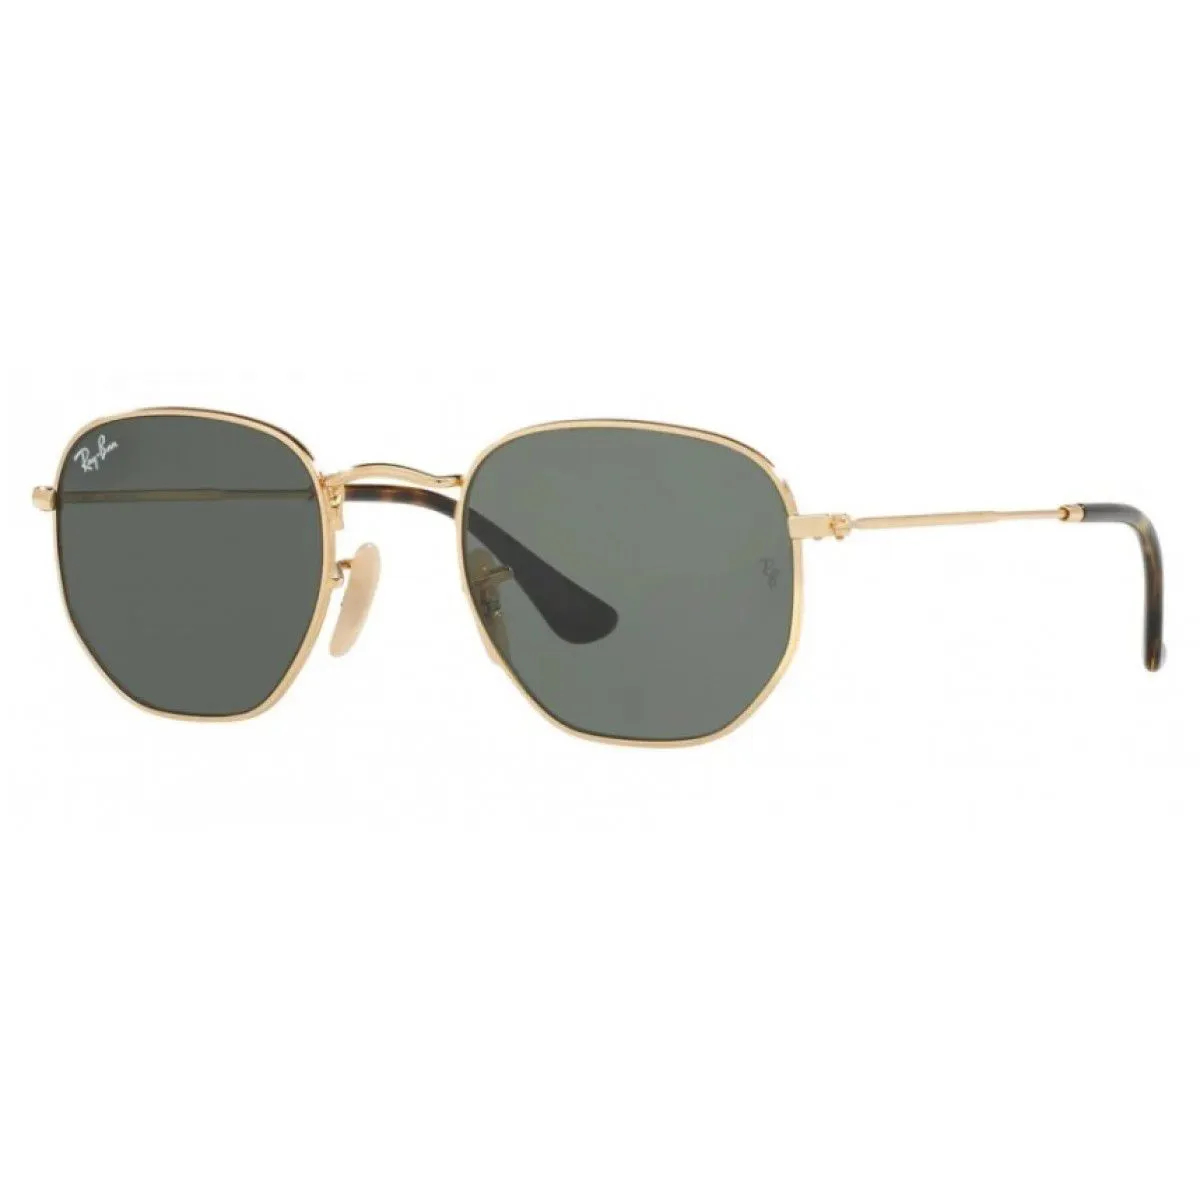 Ray-Ban Hexagonal RB3548NL 001 54